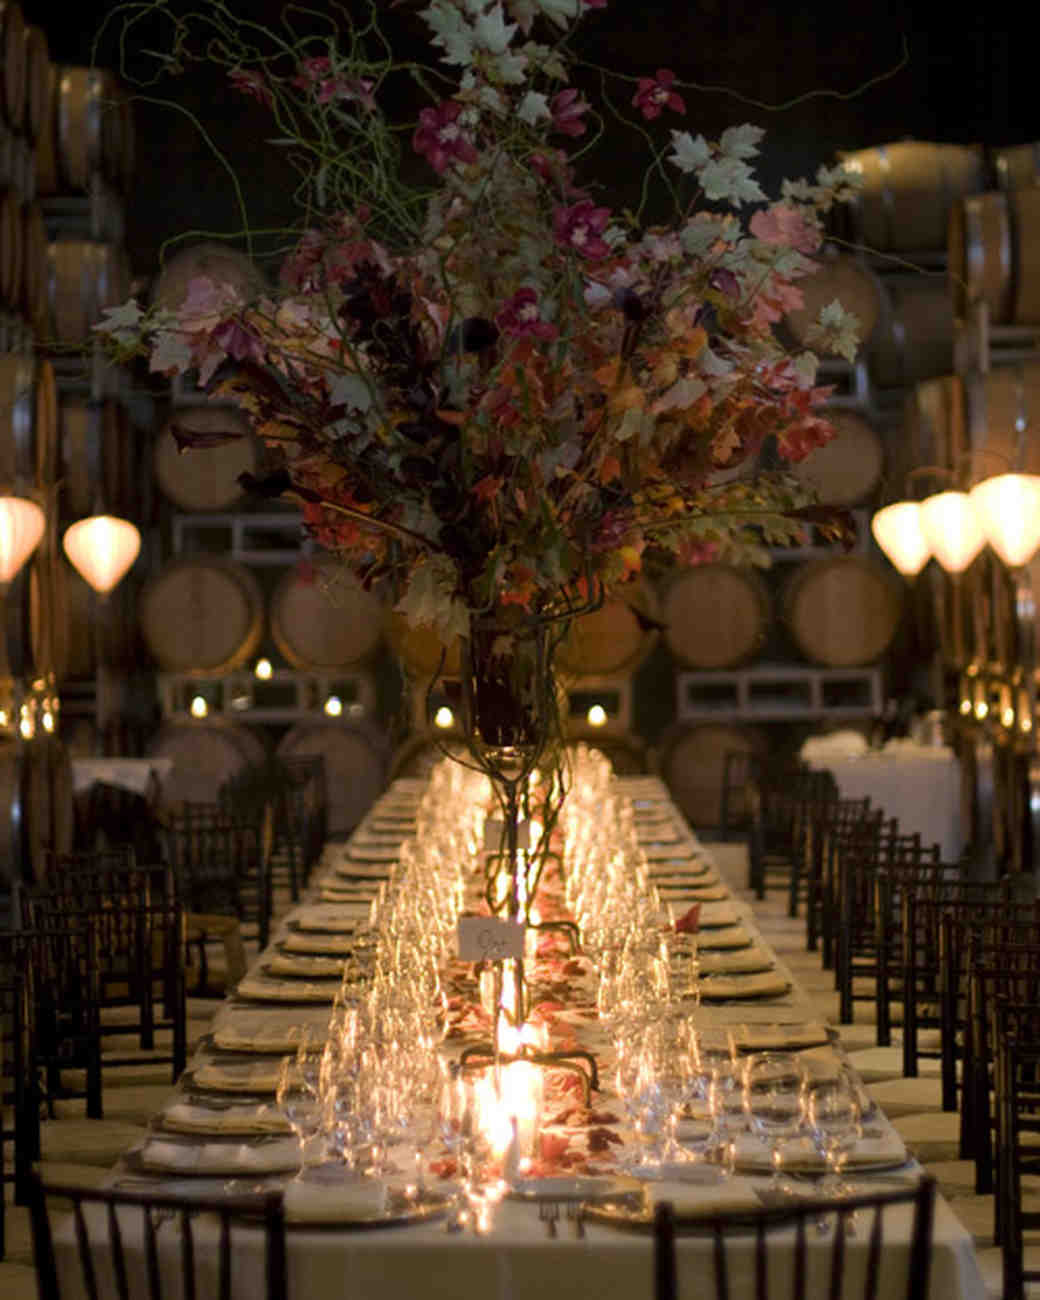 Fall Wedding Ideas Table Decorations: 58 Genius Fall Wedding Ideas